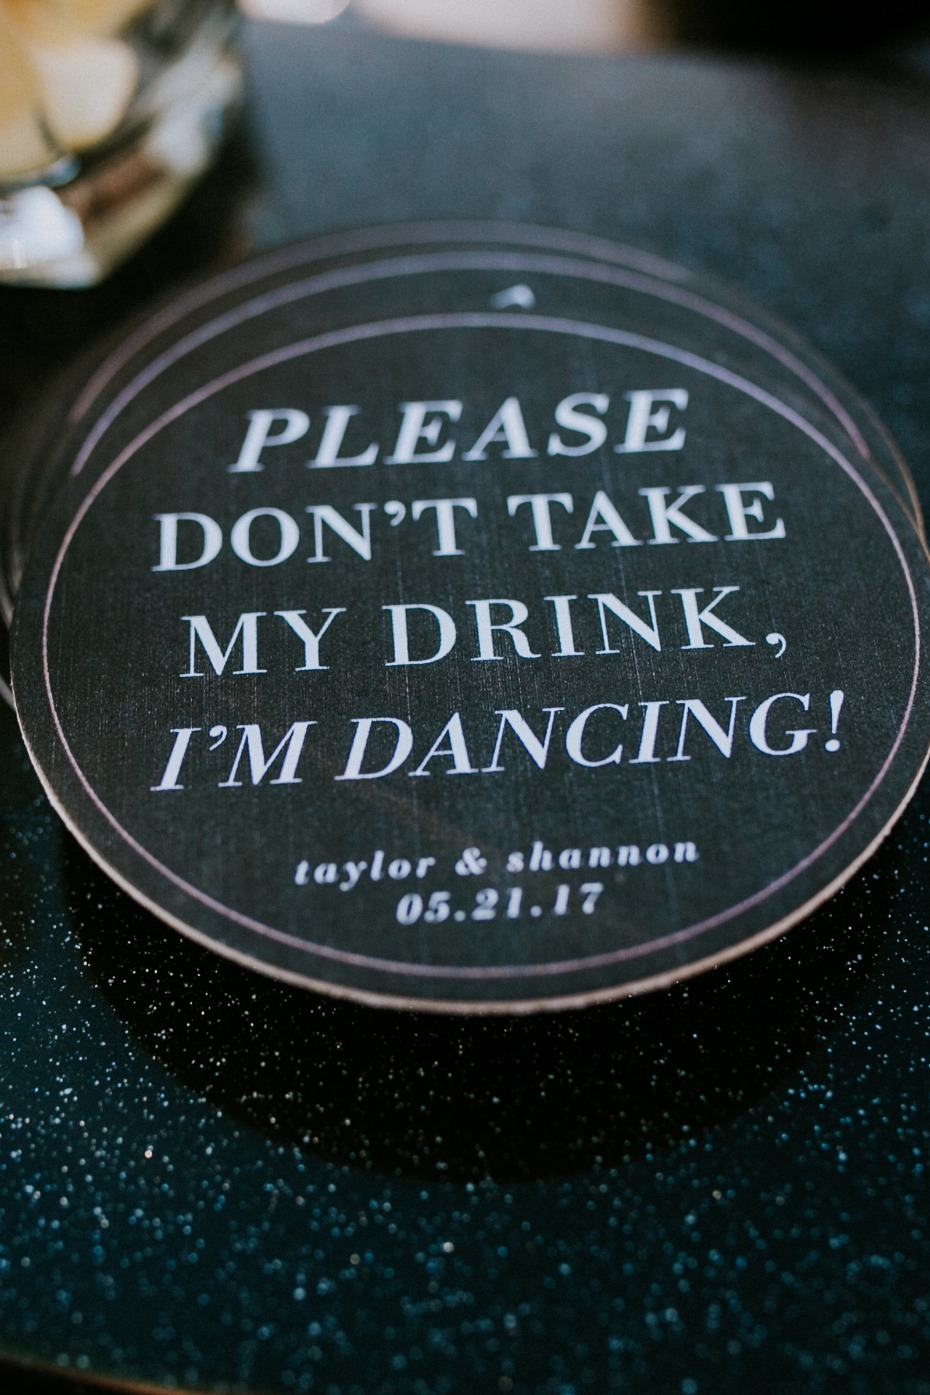 Coaster idea for the party